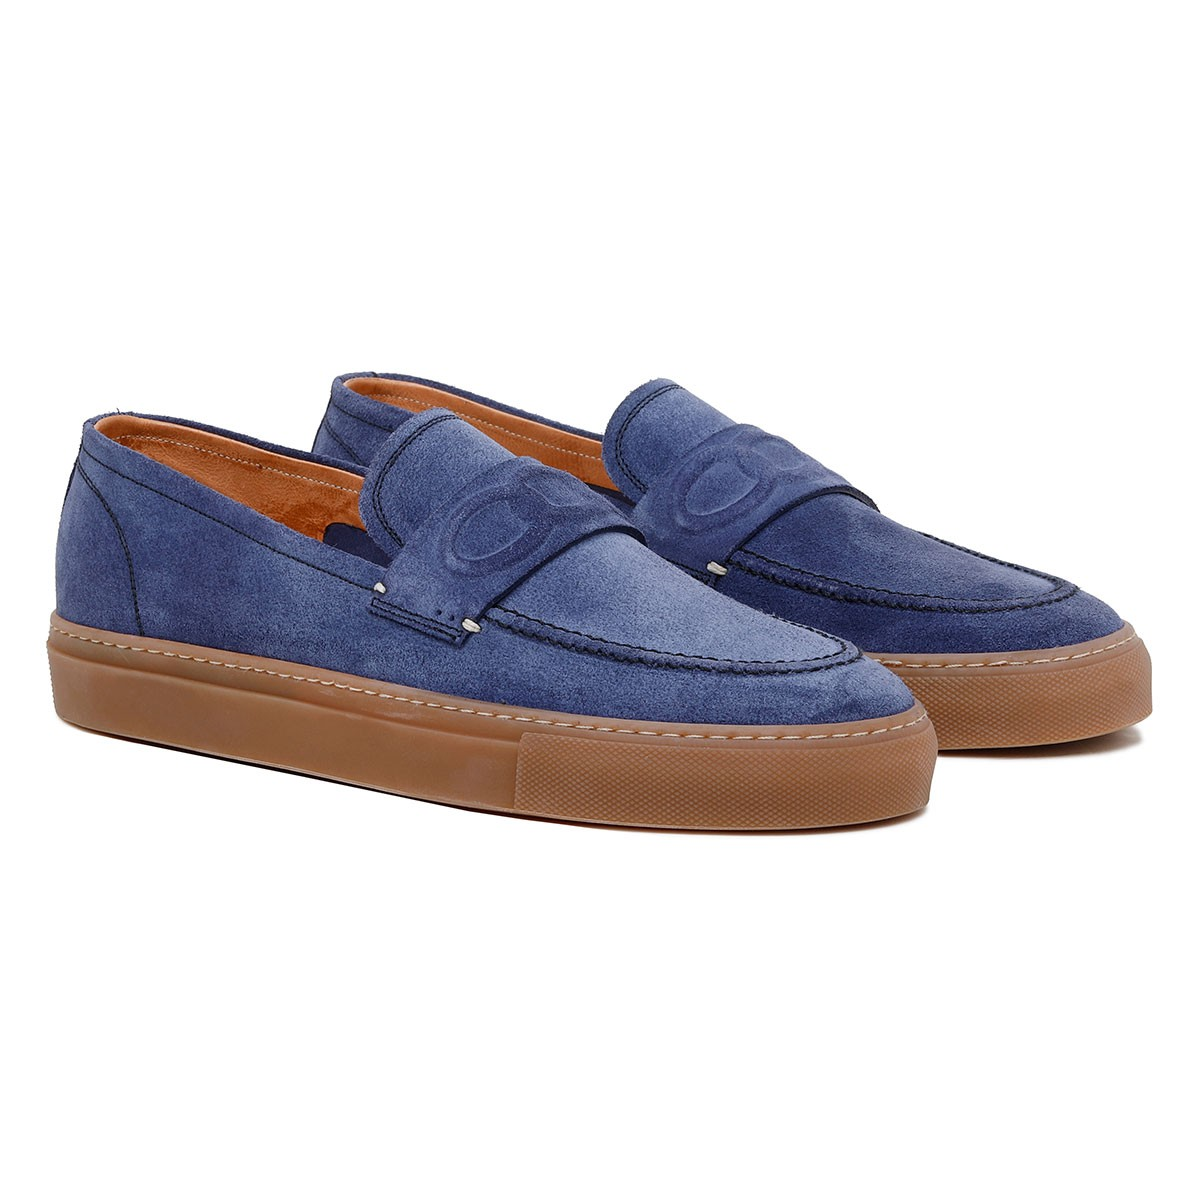 St. Tropez blue suede loafers